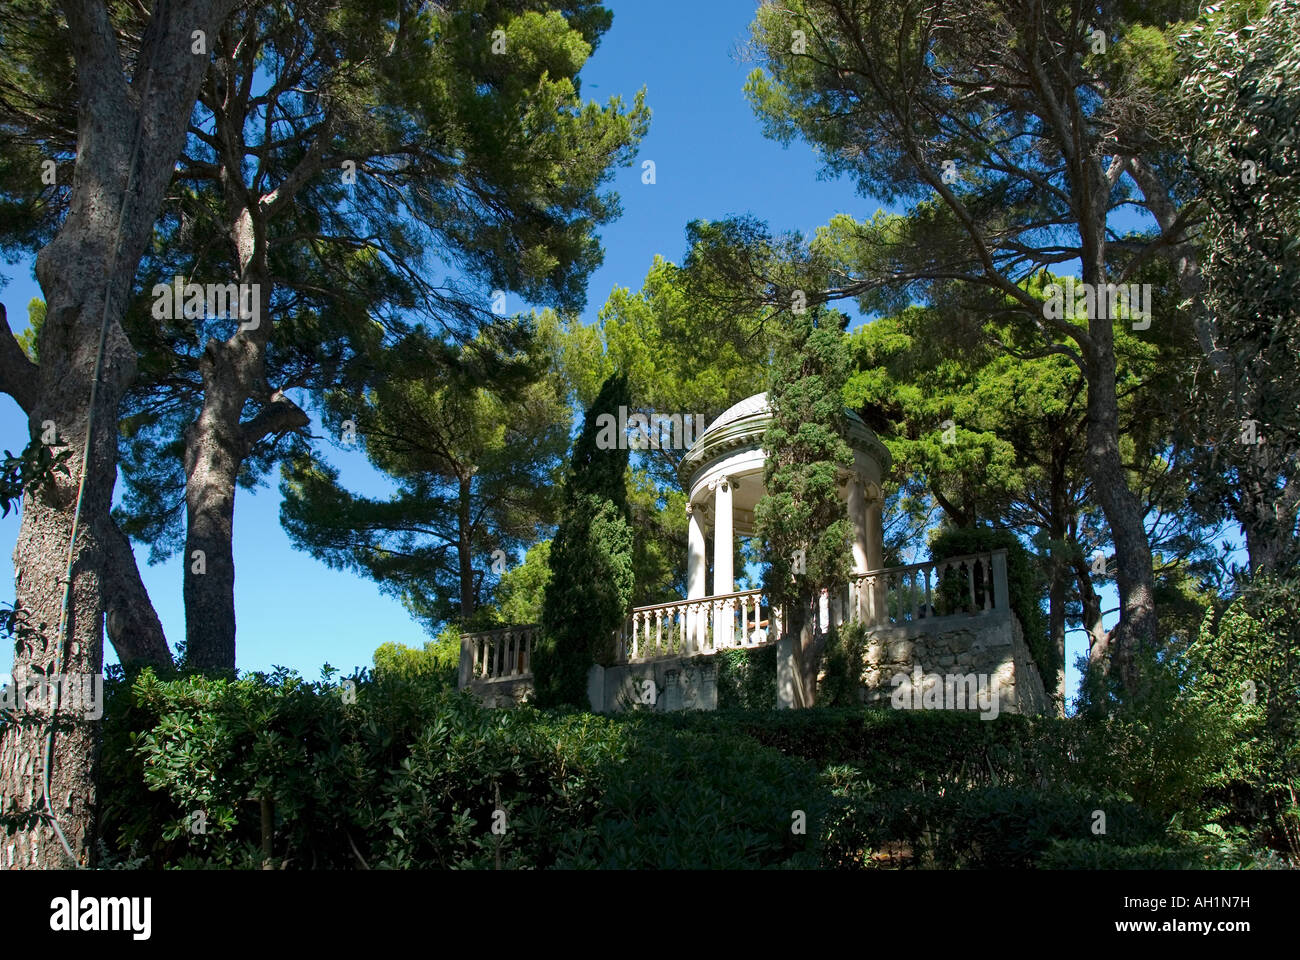 An architectural folly set among the trees in the garden of Villa Ephrussi de Rothschild at St Jean Cap Ferrat on - Stock Image